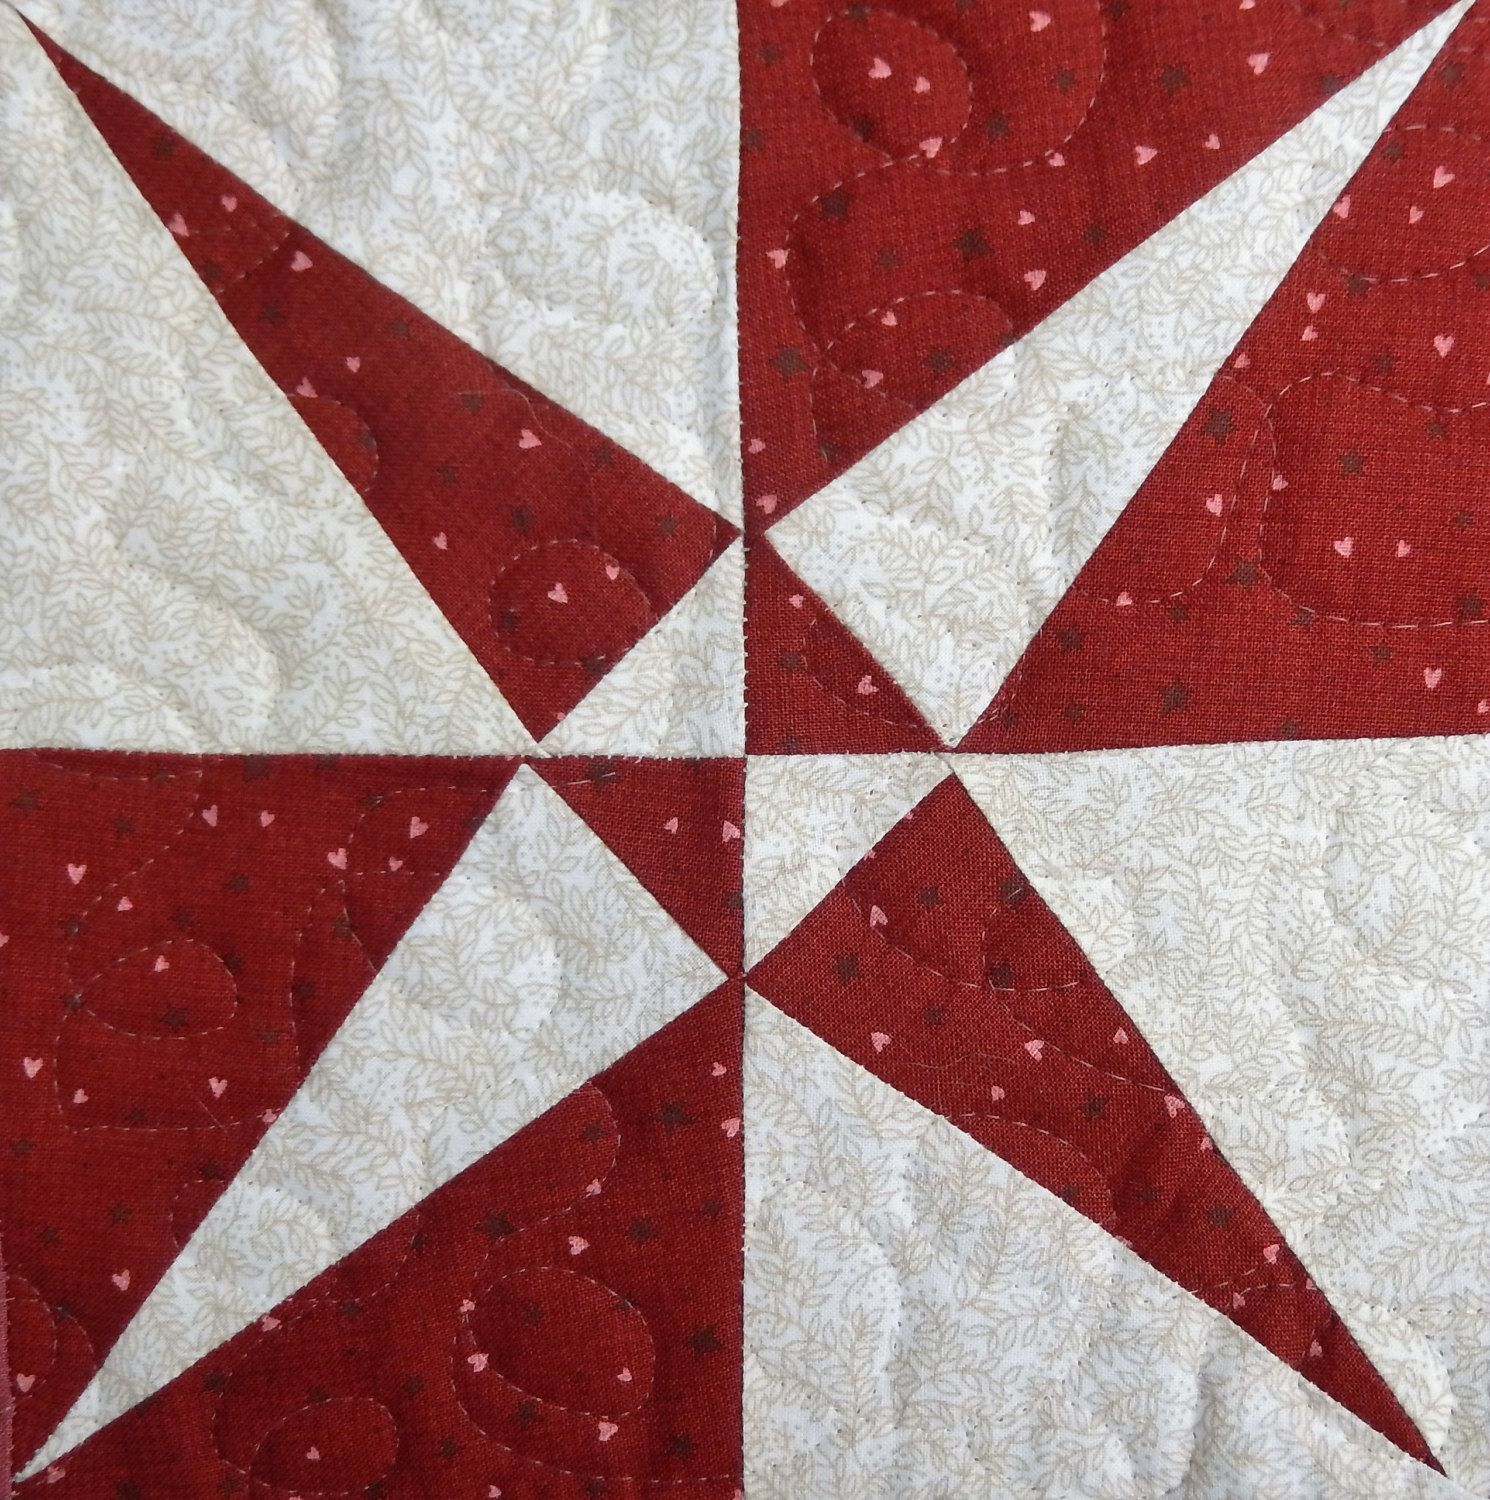 Crossed canoes foundation paper pieced PDF quilt block pattern ...